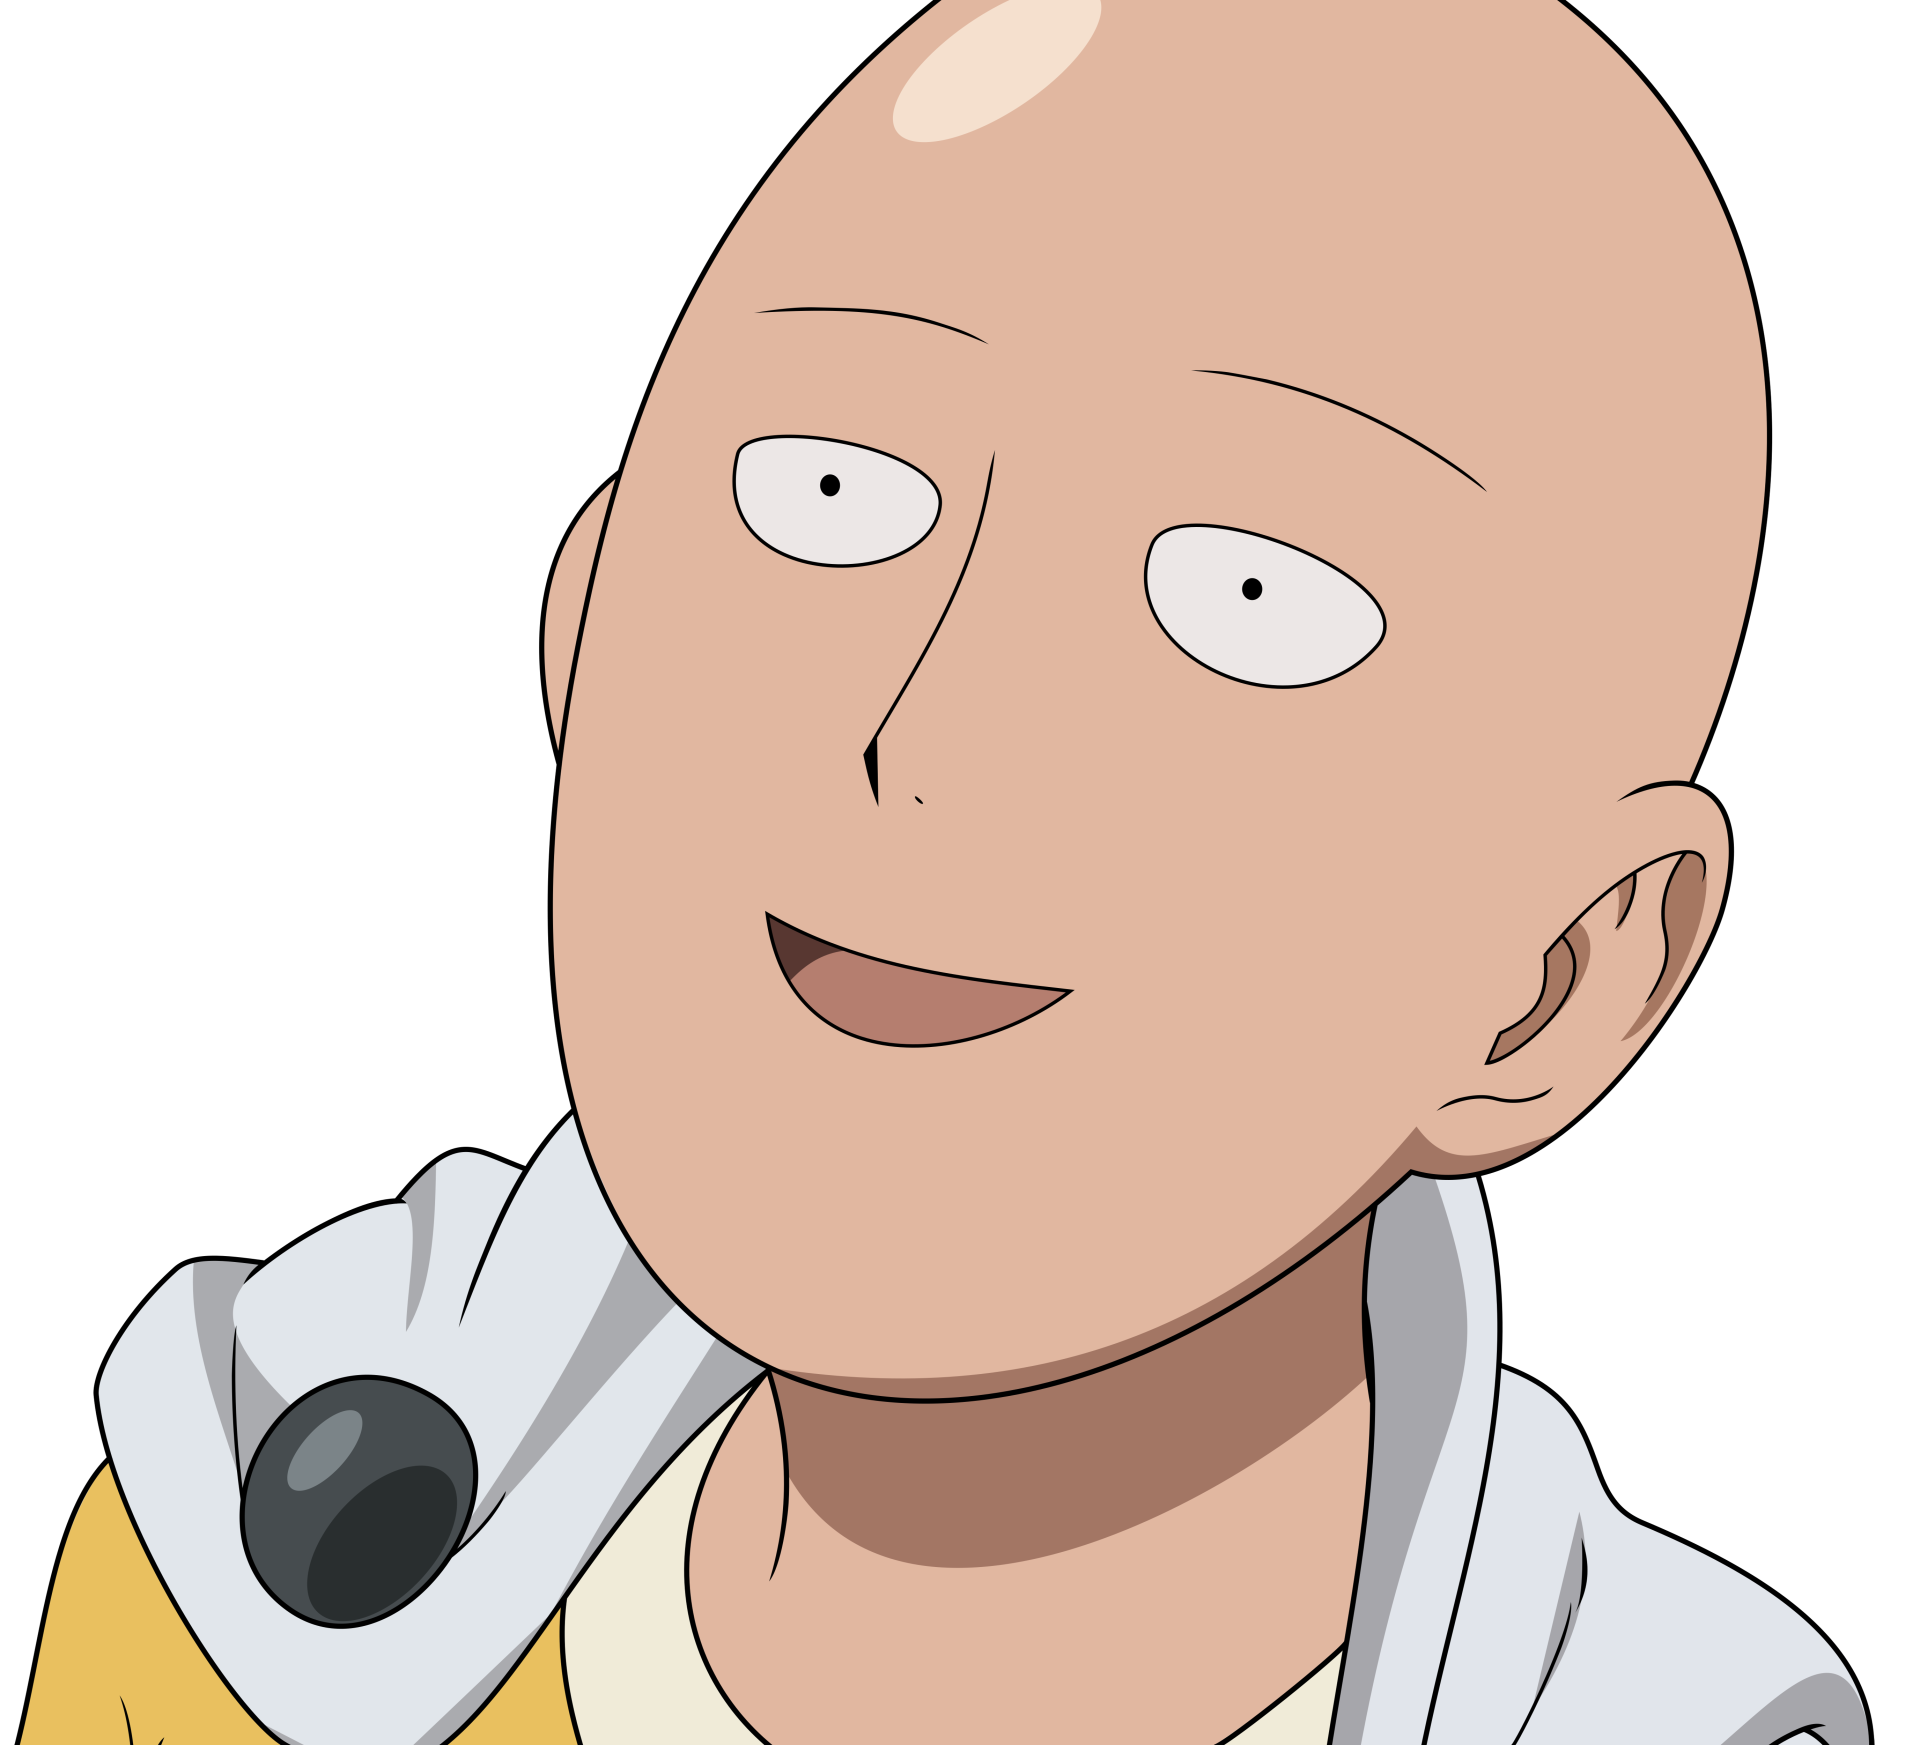 Saitama one punch man png. Anime wallpaper onepunch